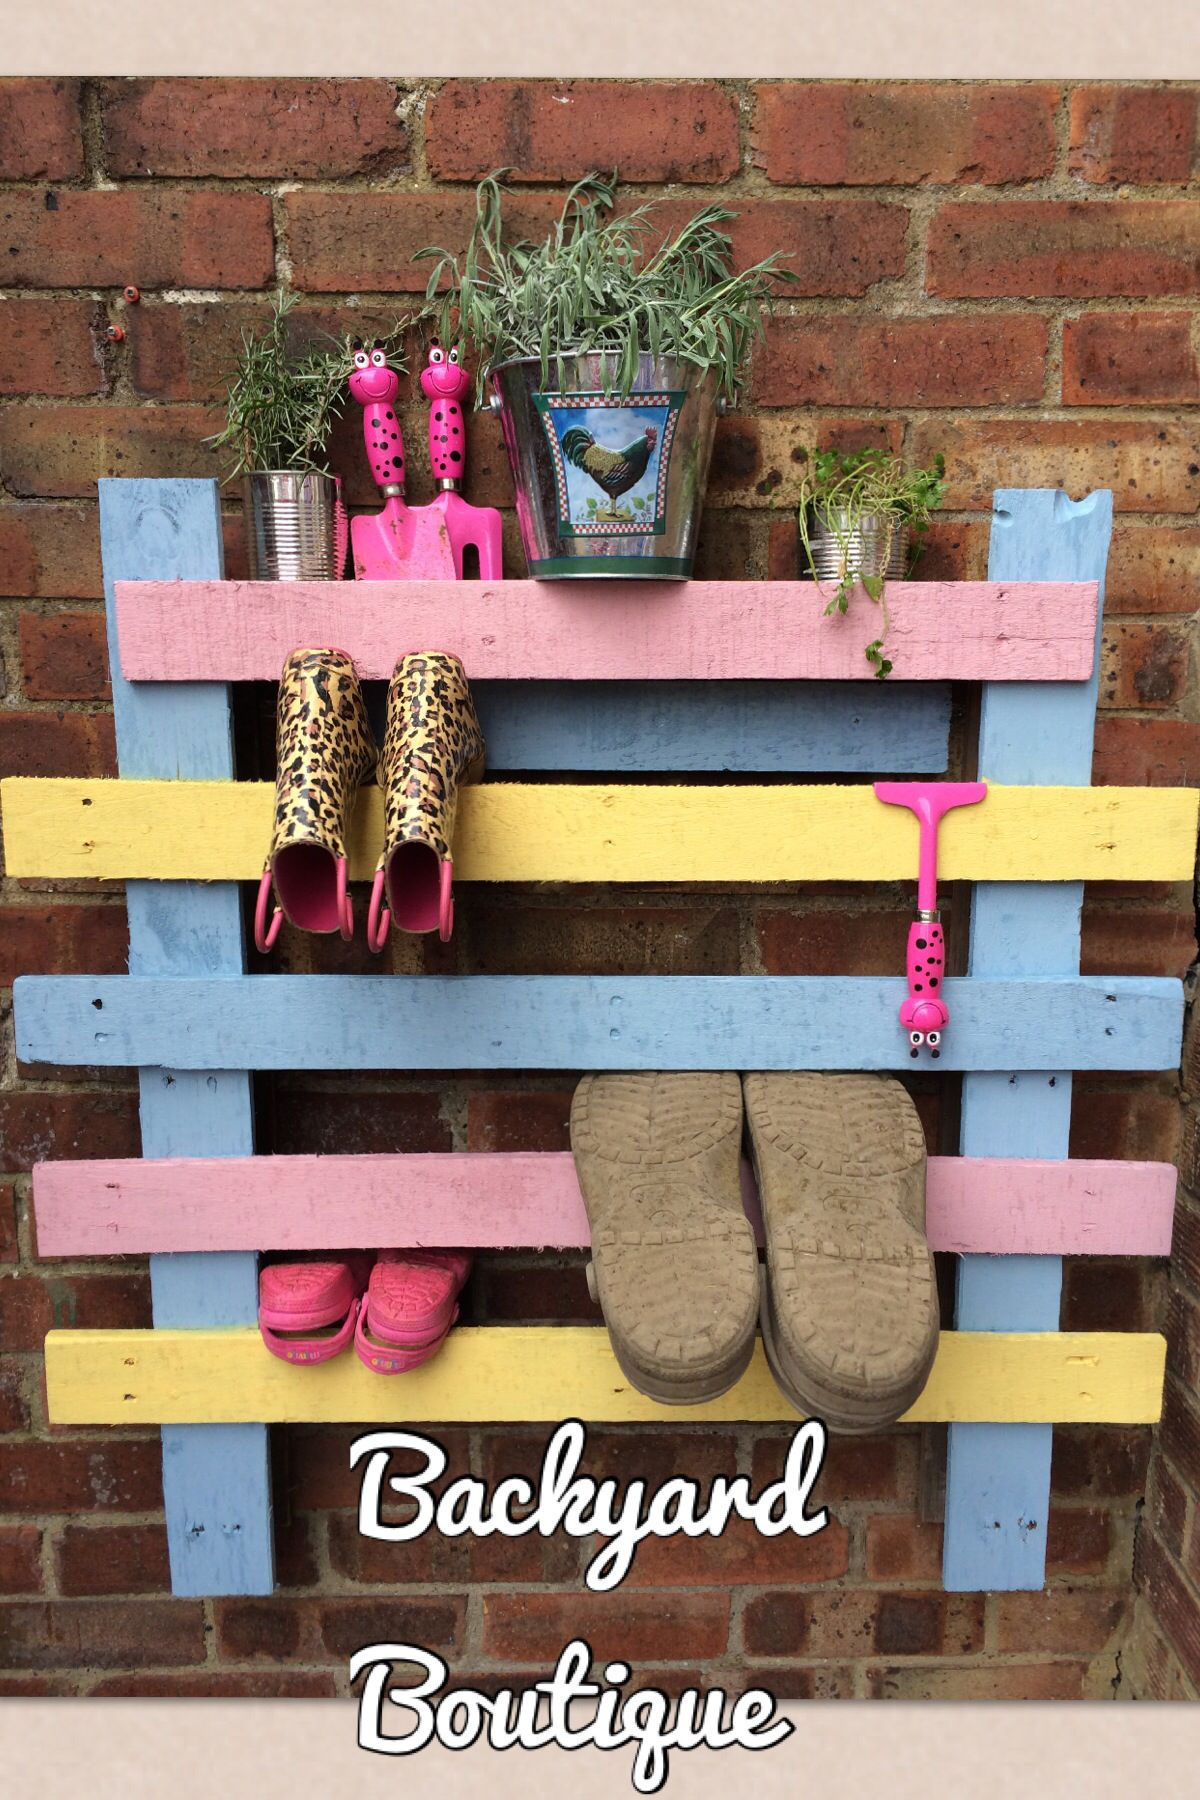 Hacked up and reassembled pallet makes a great garden boot storage rack. Hard work done by my husband painting and faffing about done by me! & Hacked up and reassembled pallet makes a great garden boot storage ...